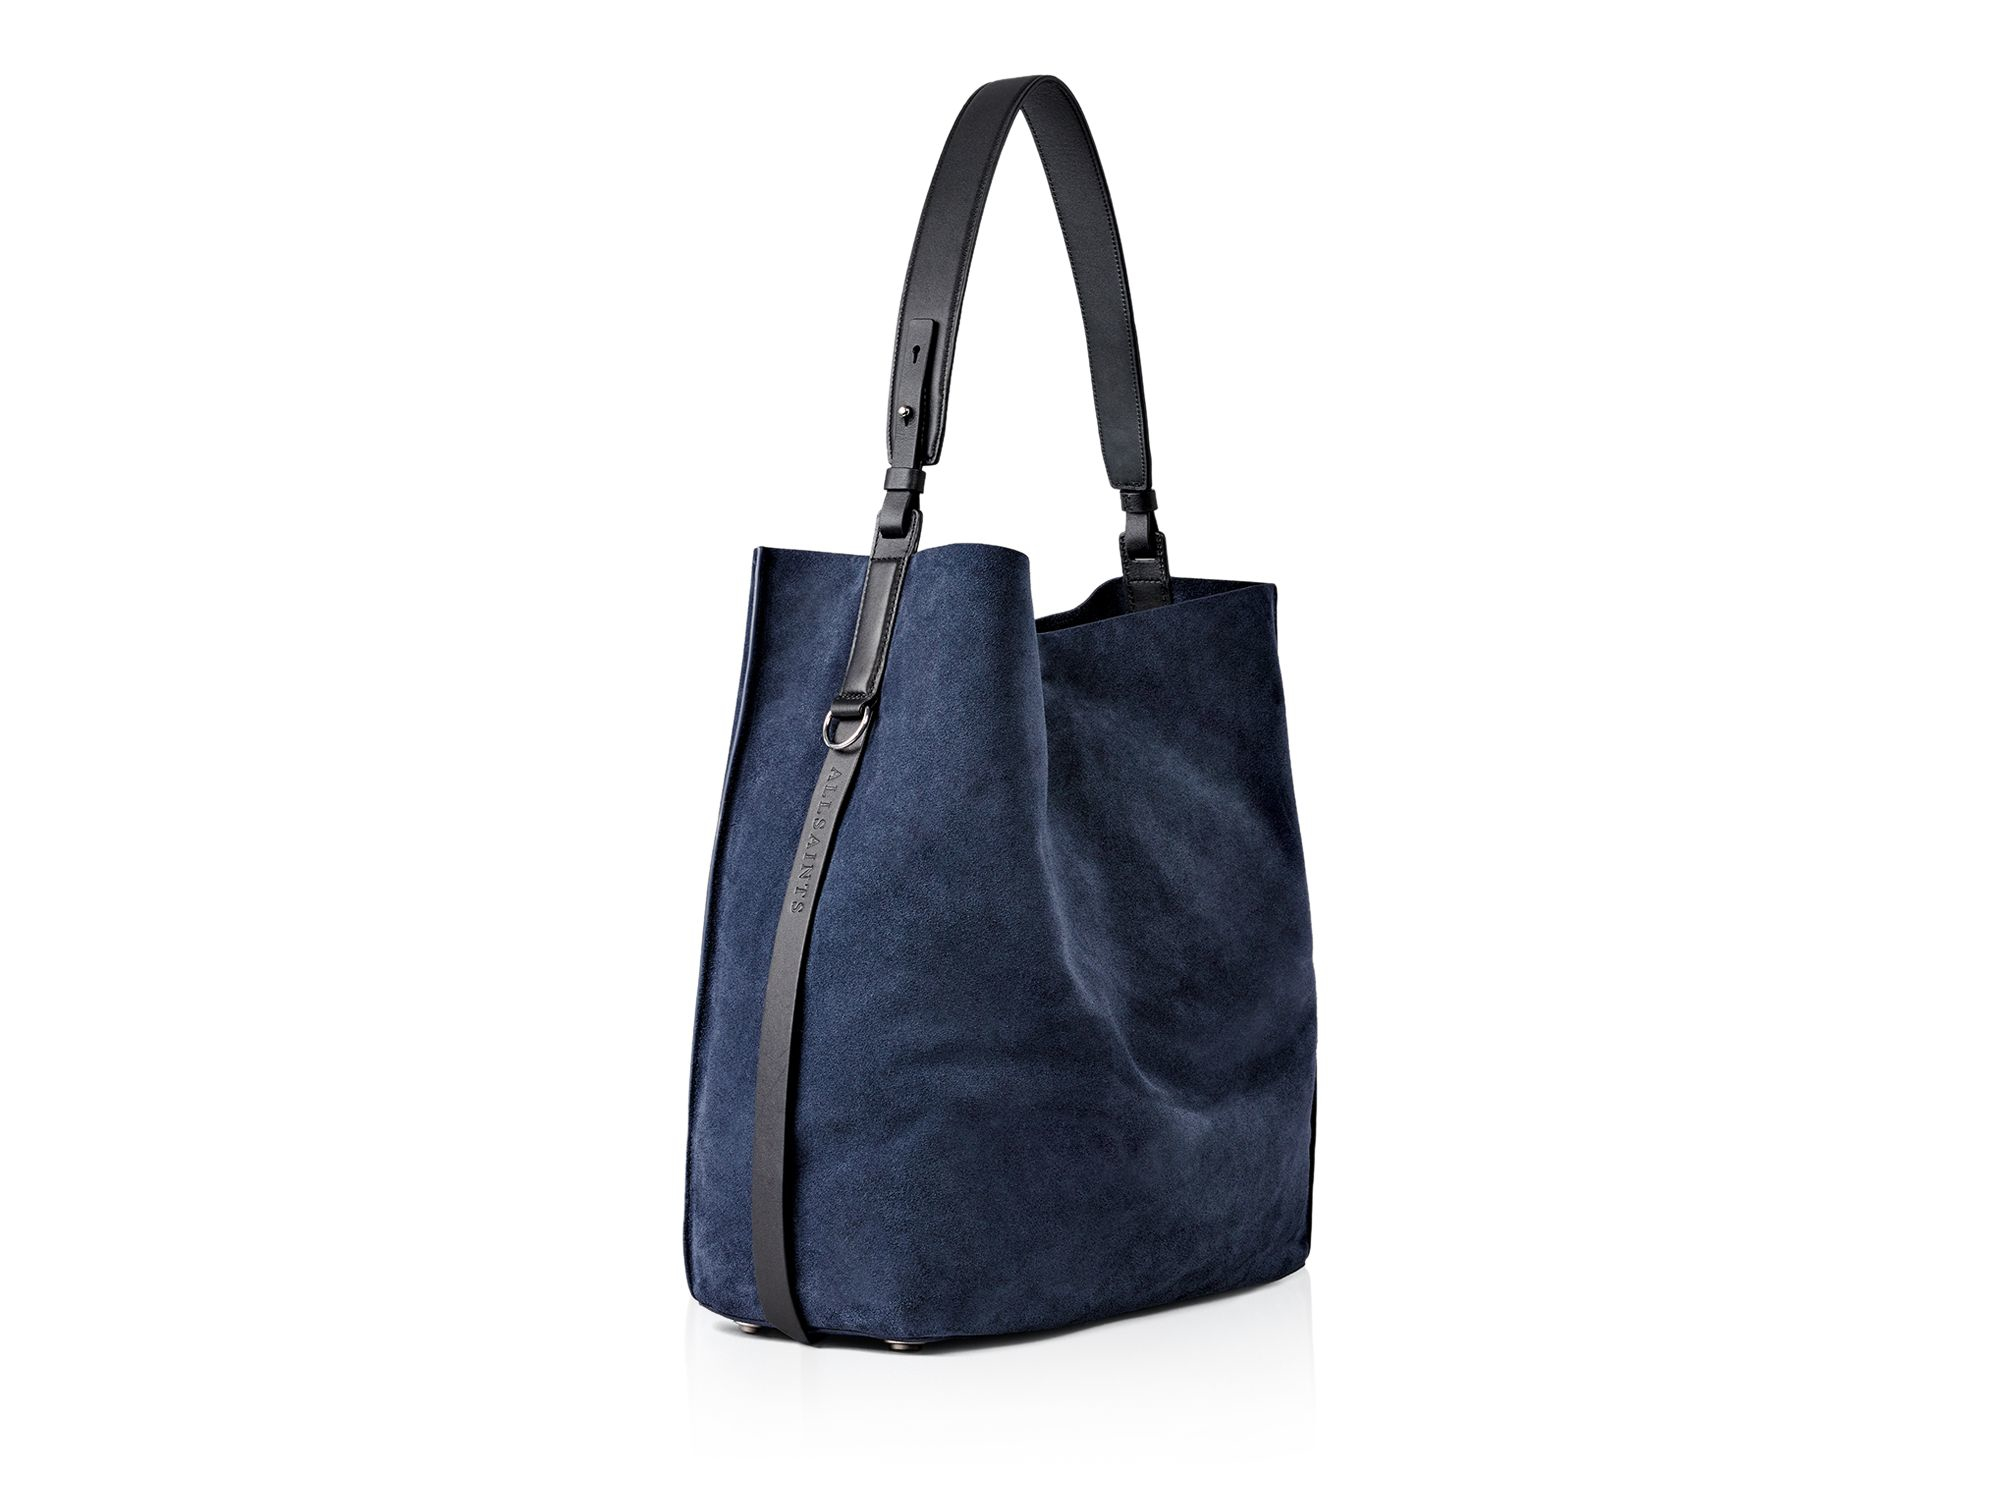 b7fe5eccb7e7 AllSaints Paradise Suede North south Tote in Blue - Lyst